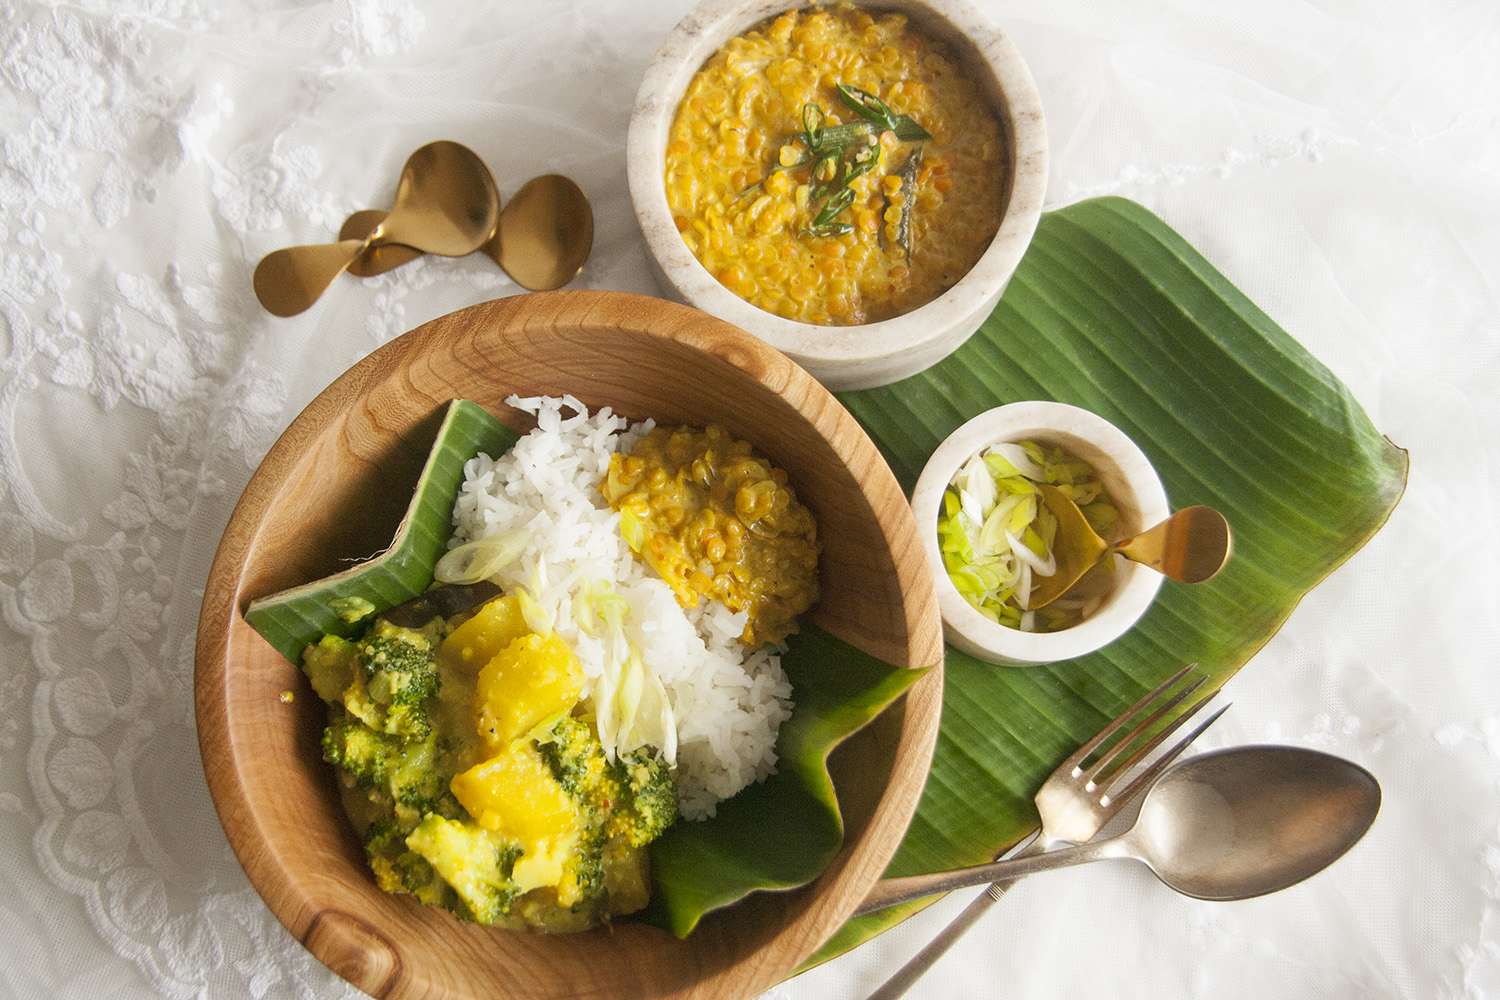 Sri Lanka Küche Rezepte Sri Lankan Food Dhal Brokkoli Curry Vanillakitchen